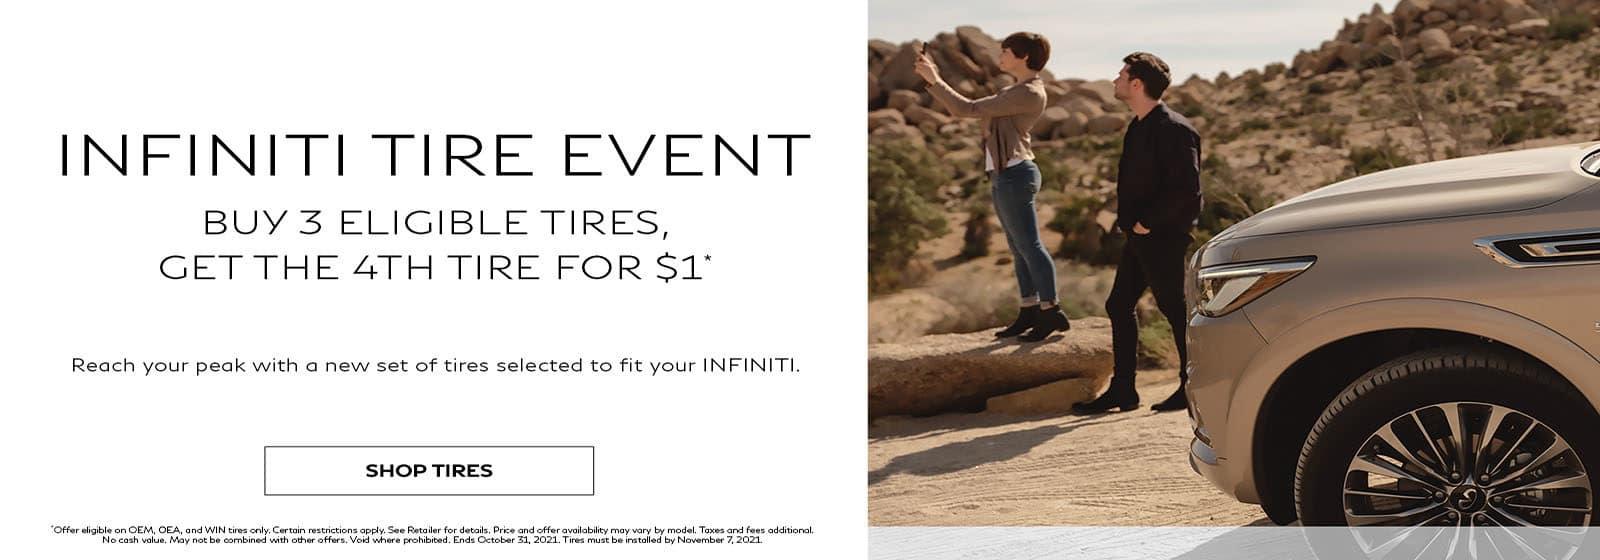 Buy 3 Eligible Tires, Get 4th for $1